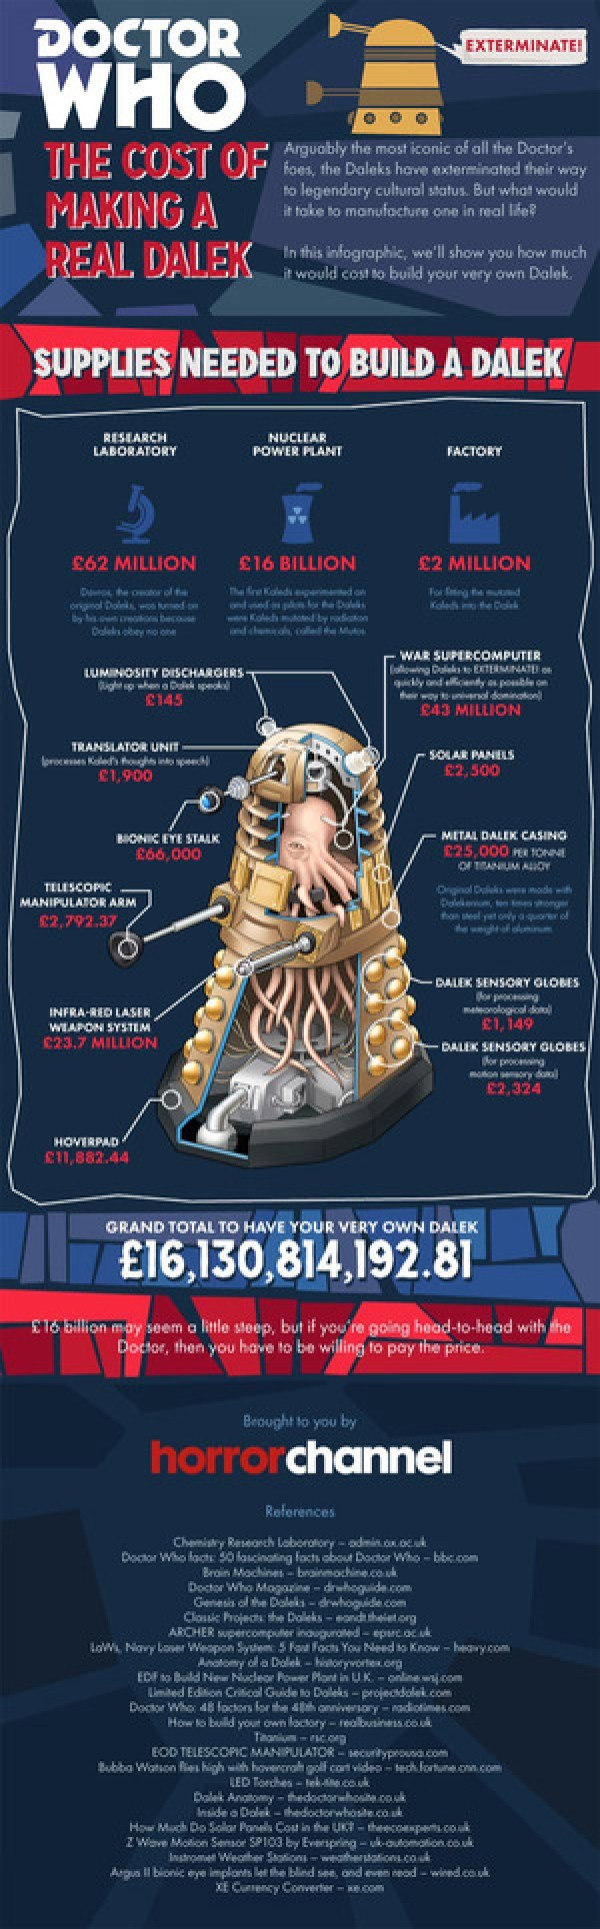 The-Cost-of-Making-a-Real-Dalek